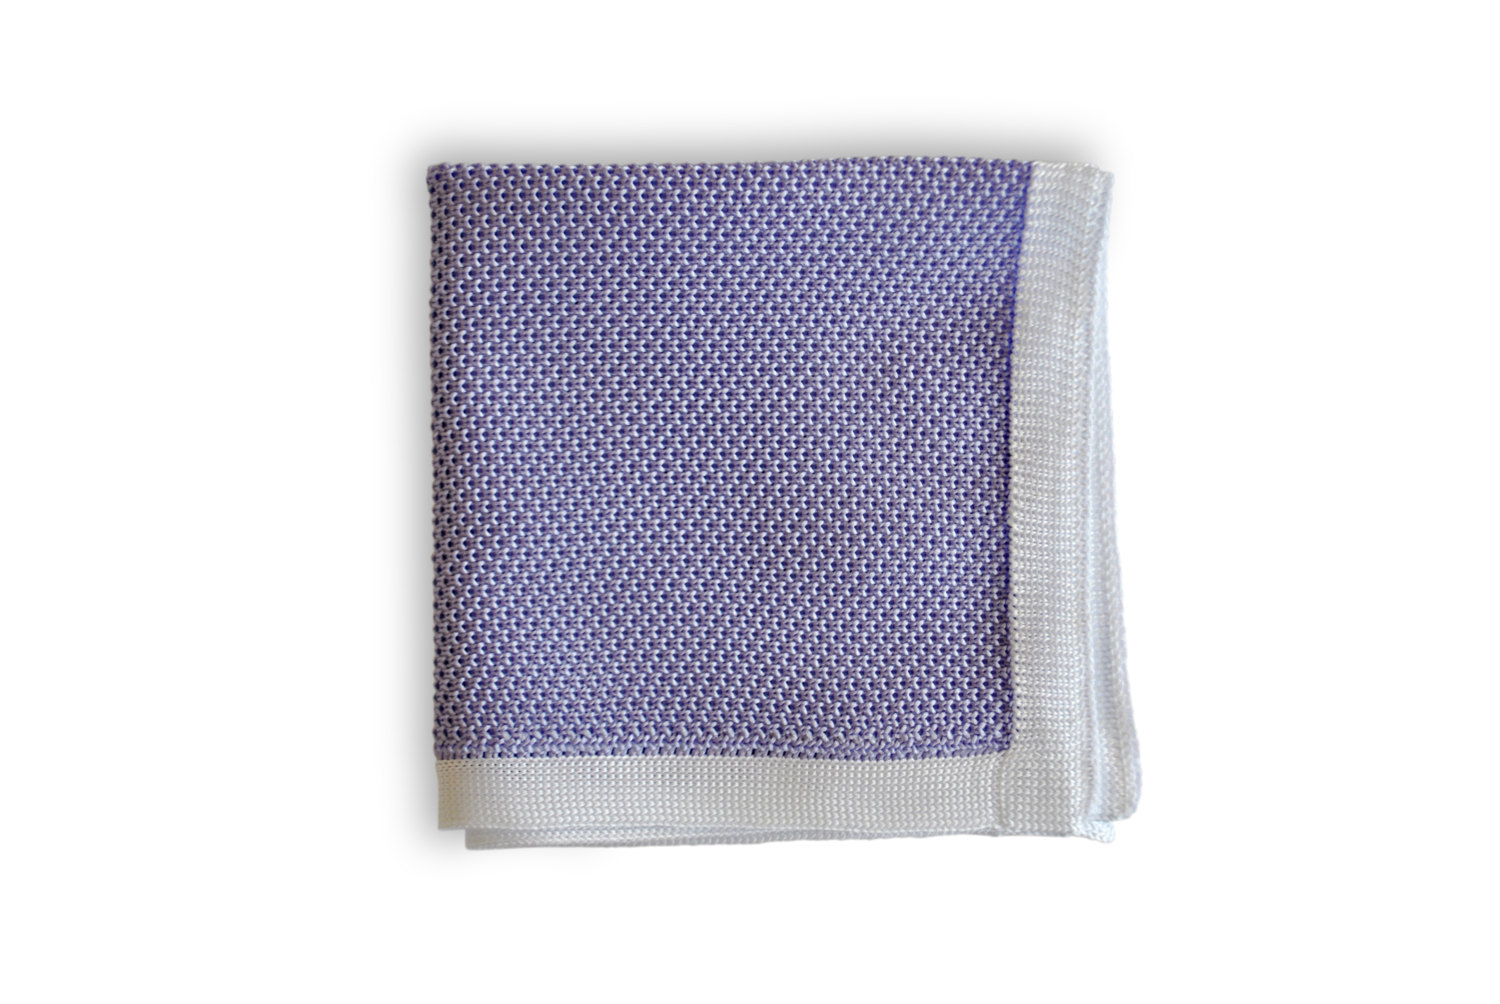 Frederick Thomas knitted Light Purple with White Edging pocket square with white